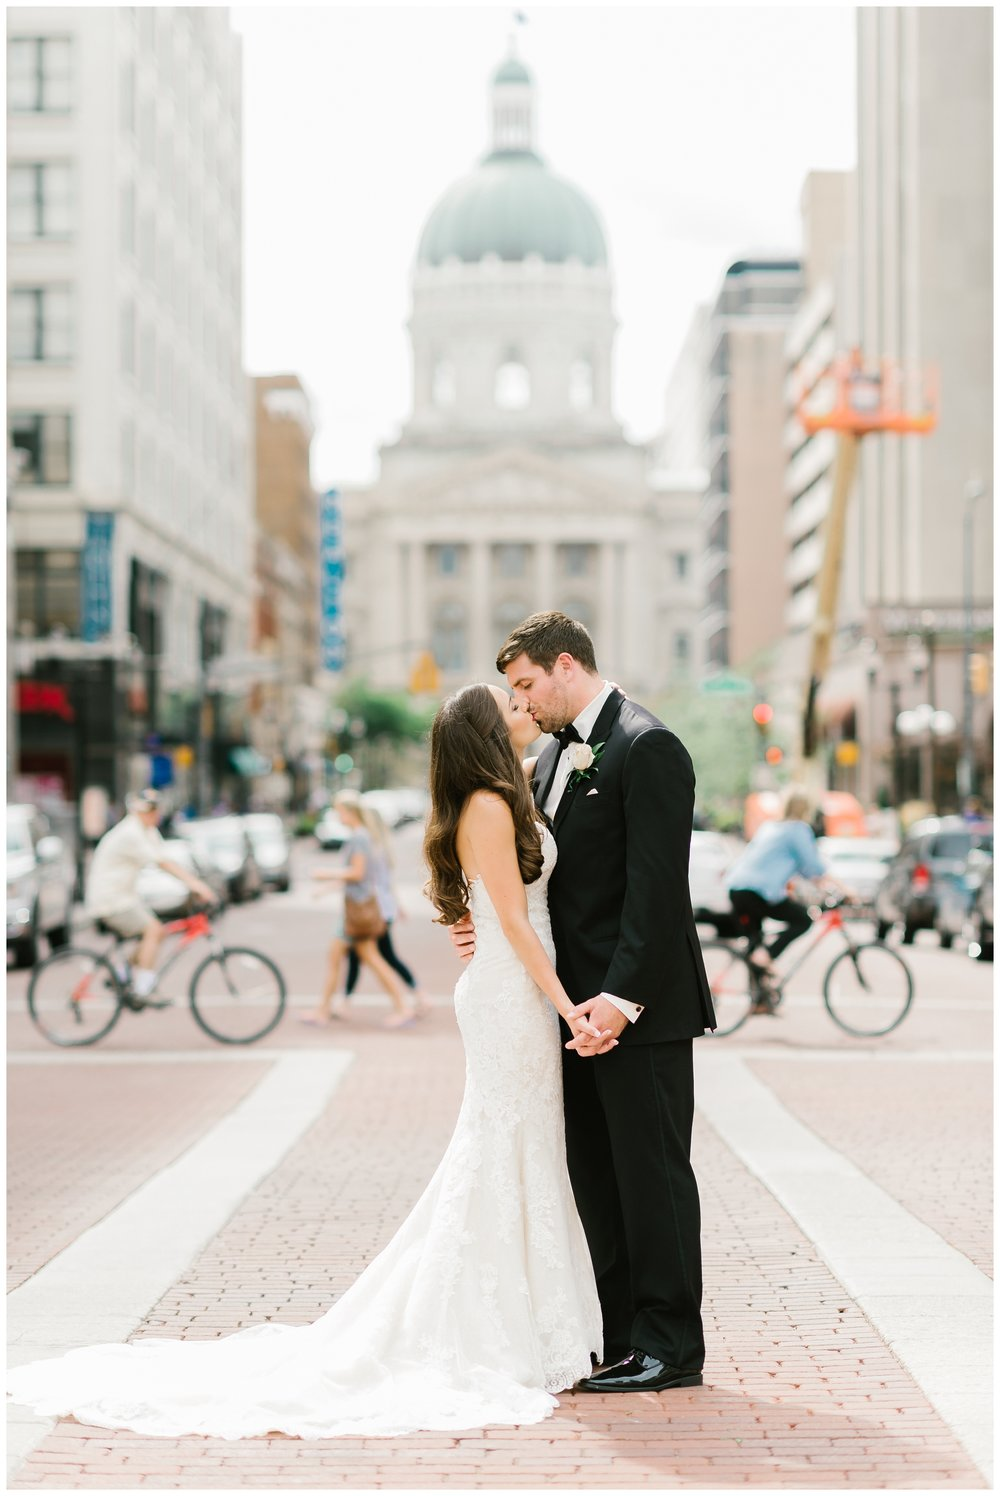 Rebecca_Bridges_Photography_Indianapolis_Wedding_Photographer_6850.jpg